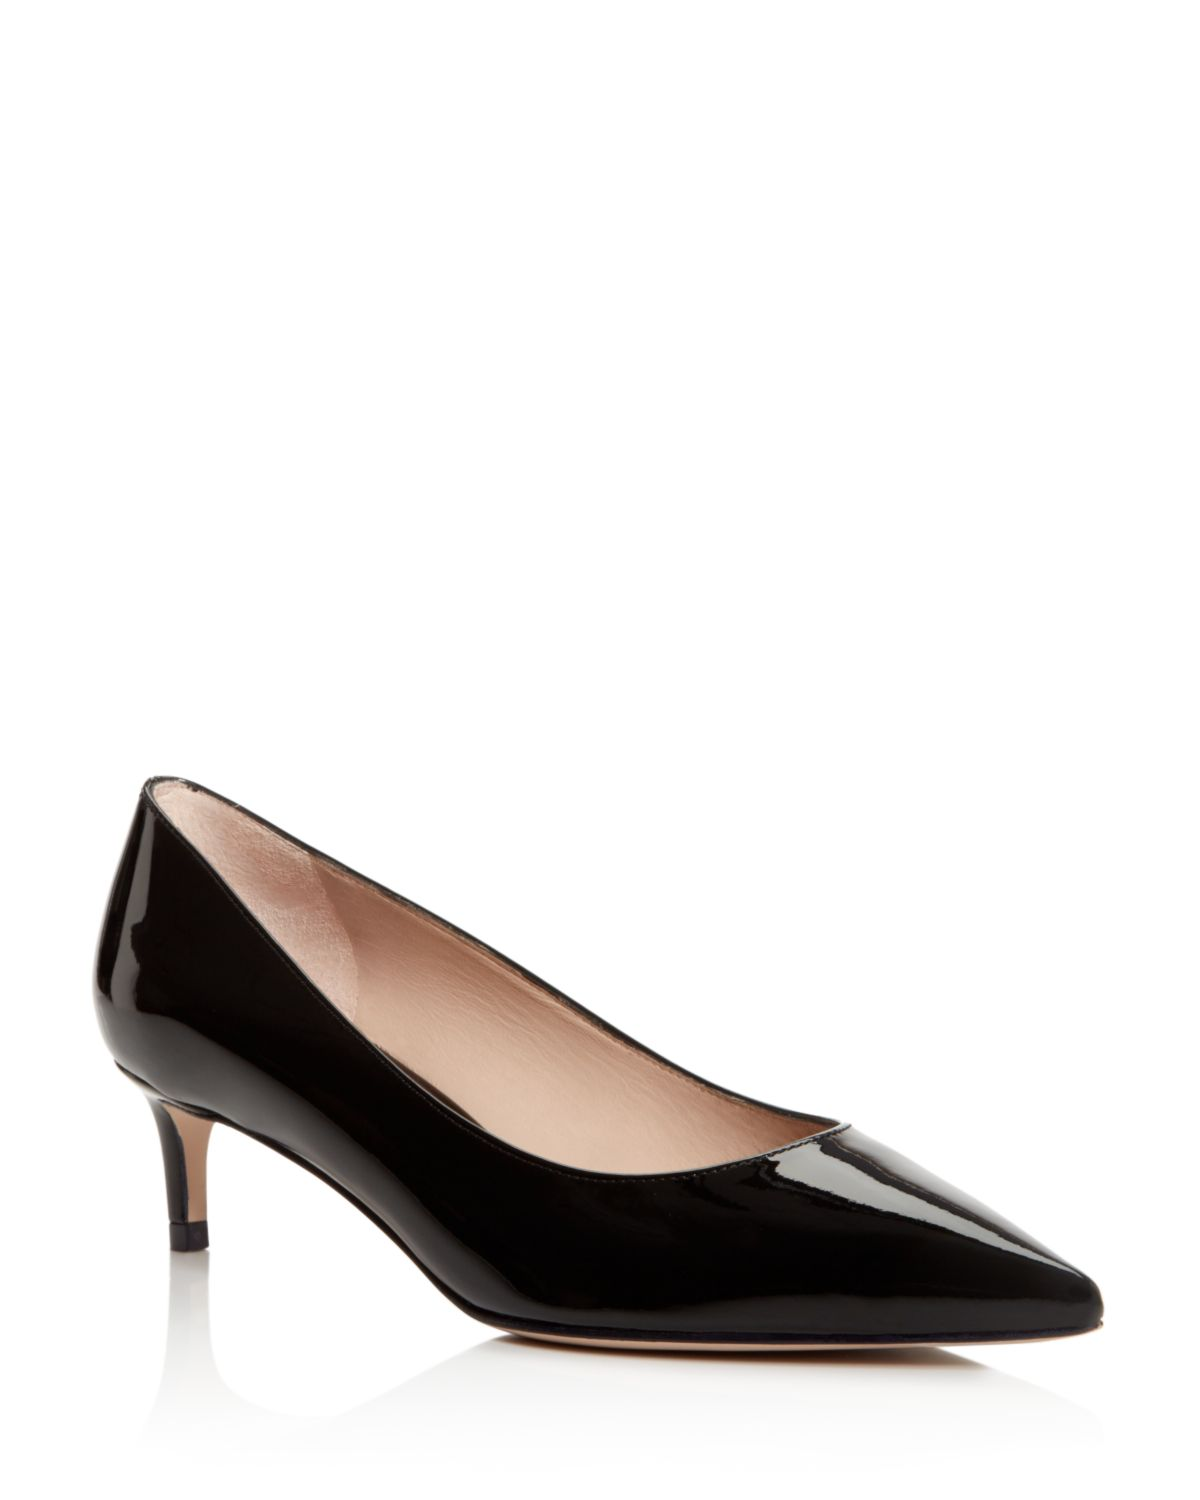 Stuart Weitzman Women's Leigh 45 Patent Leather Kitten Heel Pumps